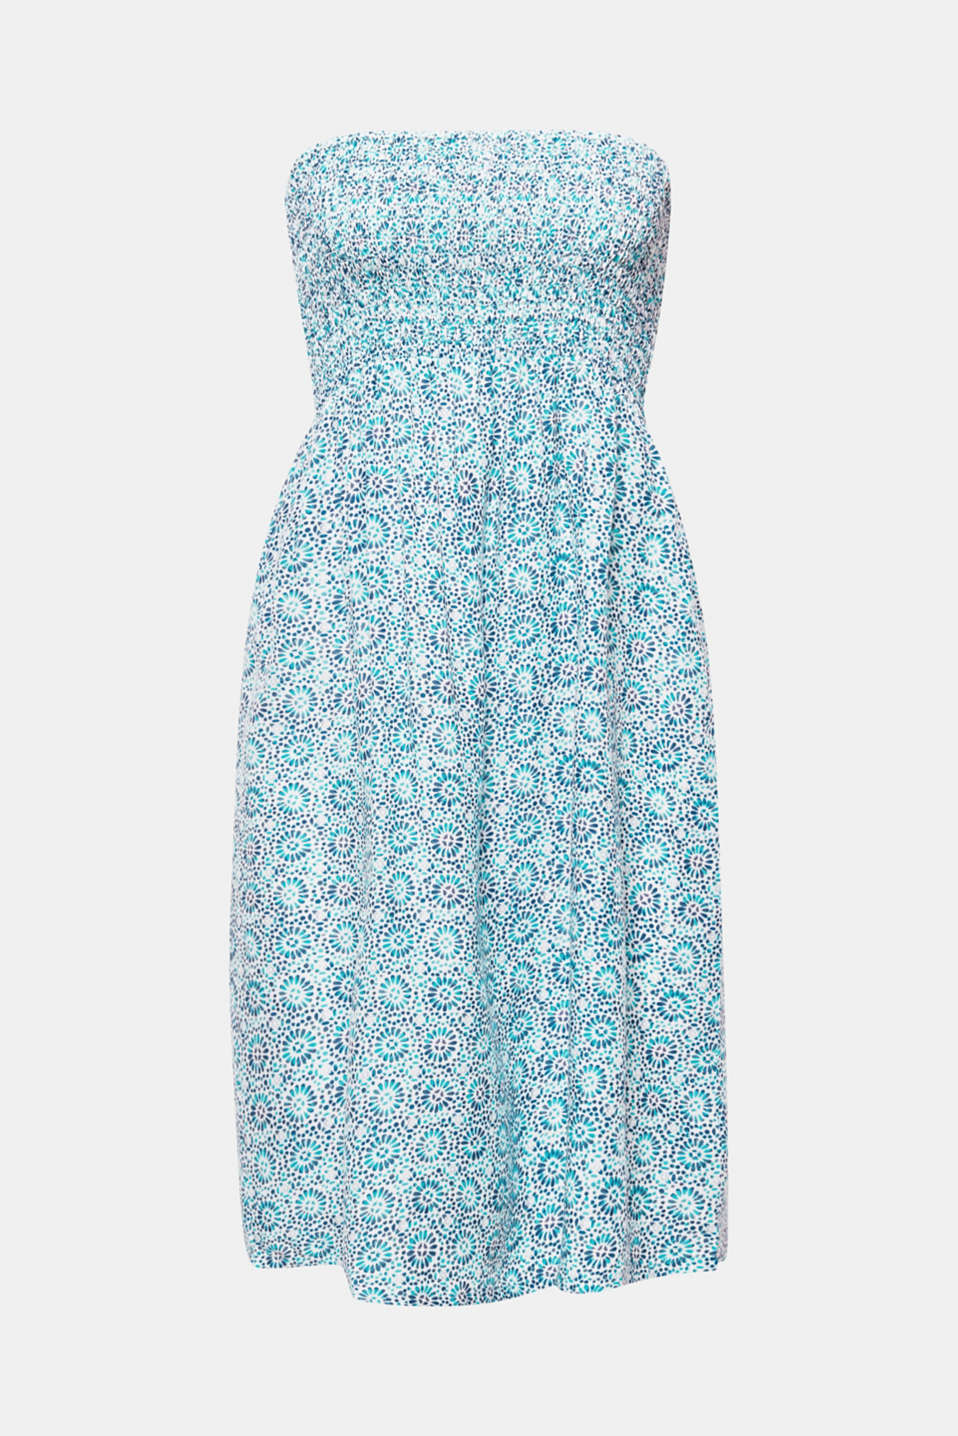 RAVINE BEACH collection – this bandeau dress with an ornamental print is quick to throw on for a light and airy summer beach look.